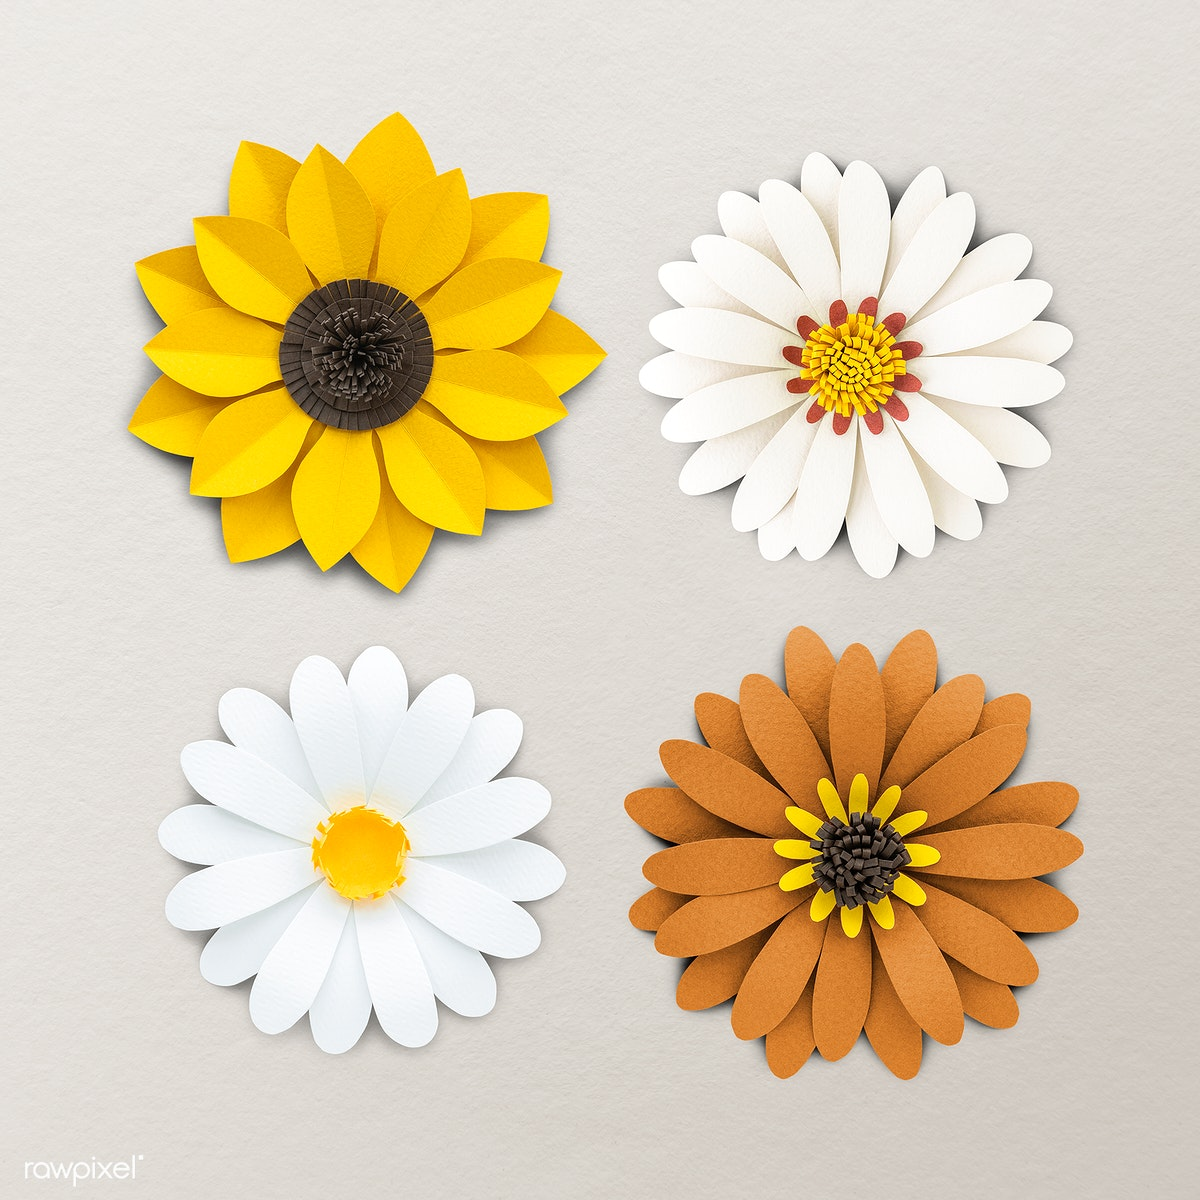 Download Premium Psd Of White And Yellow Flower Paper Craft Set 1202479